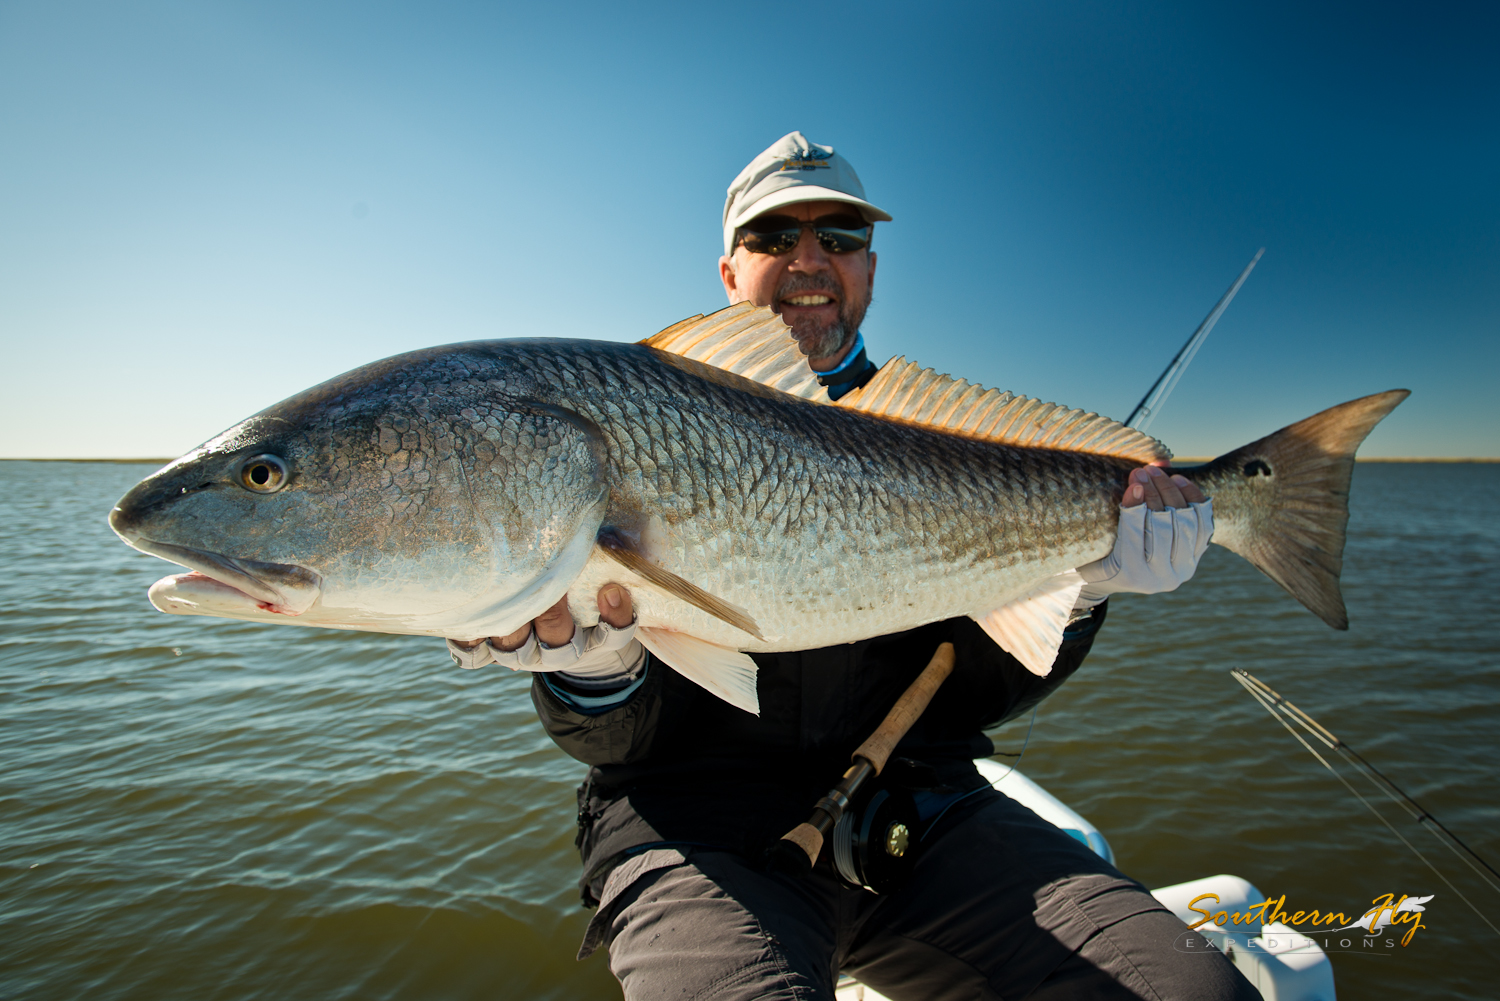 Fly Fishing New Orleans for Huge monster Redfish Southern Fly Expeditions